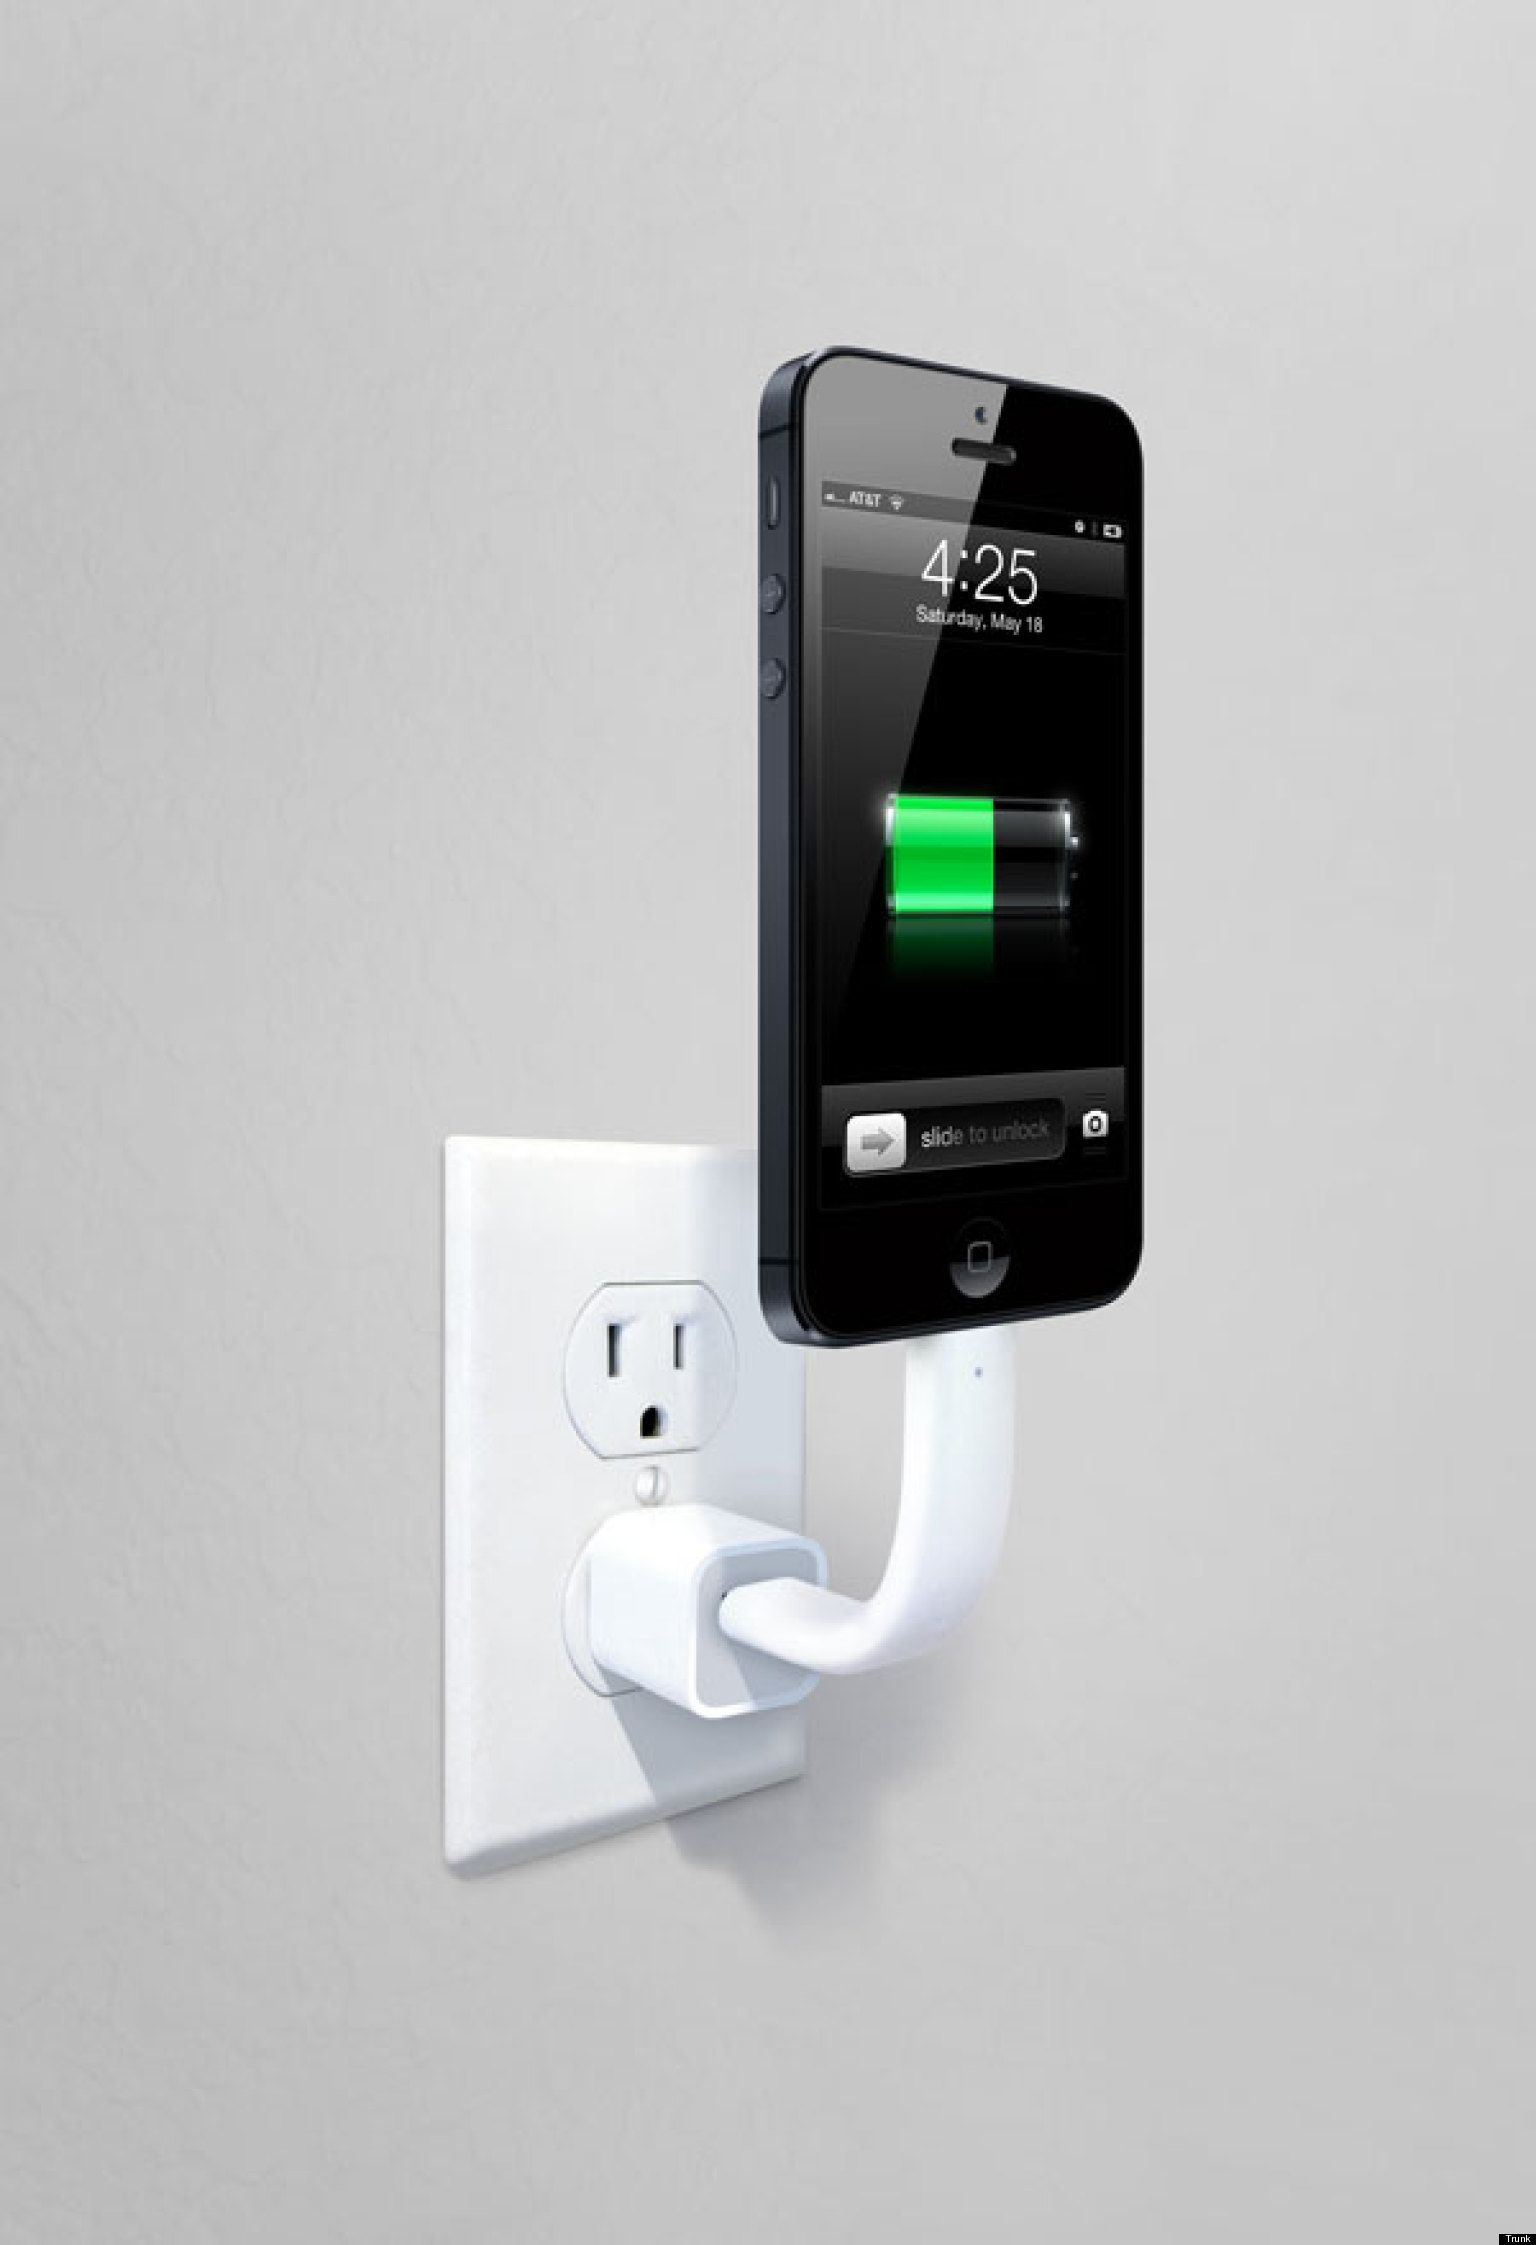 LOOK The Best iPhone Charger Ever? Iphone, Iphone stand